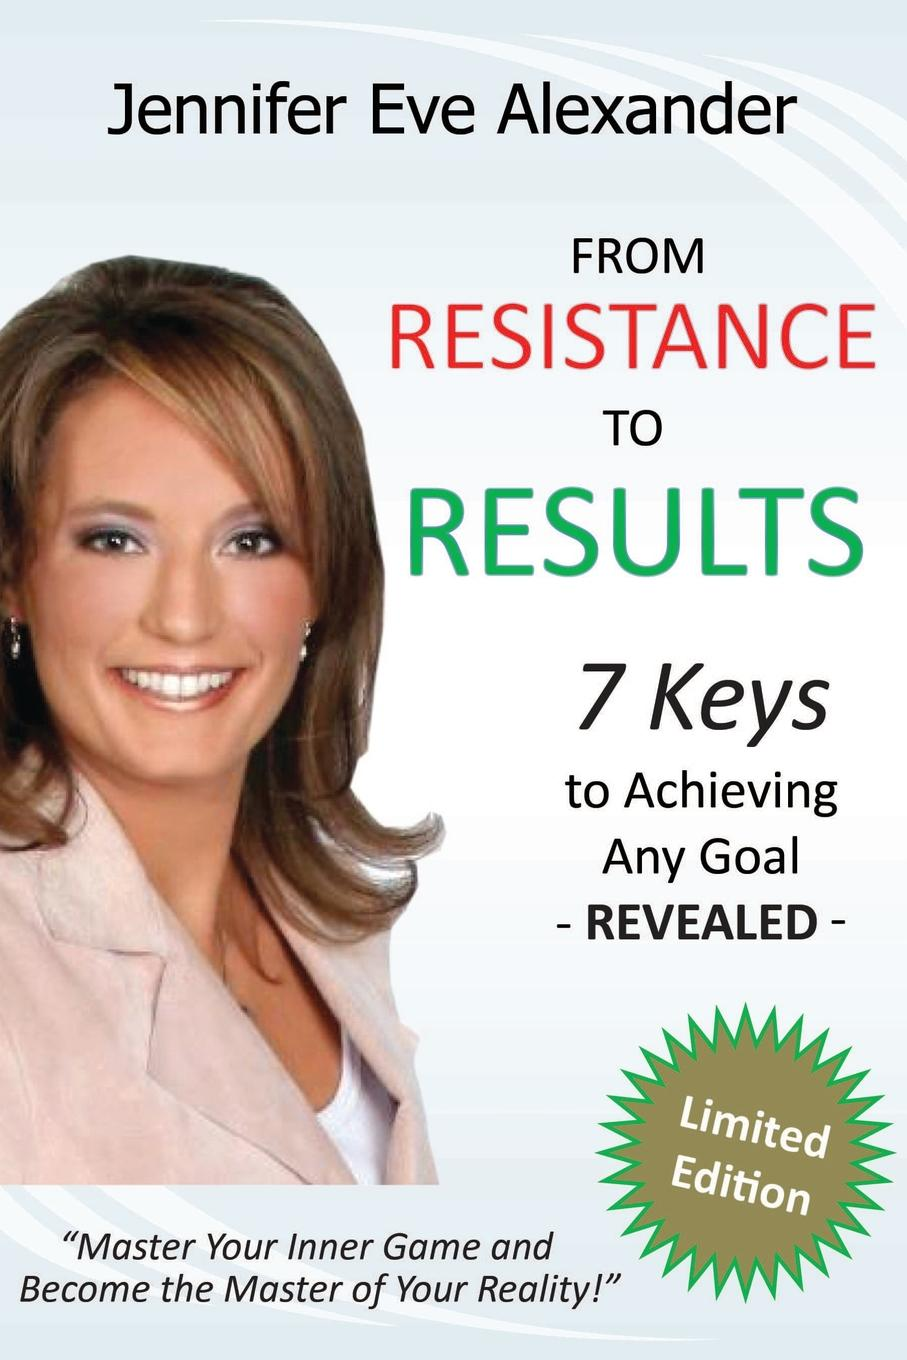 Jennifer Alexander From Resistance to Results. 7 Keys to Achieving Any Goal how to free your mind